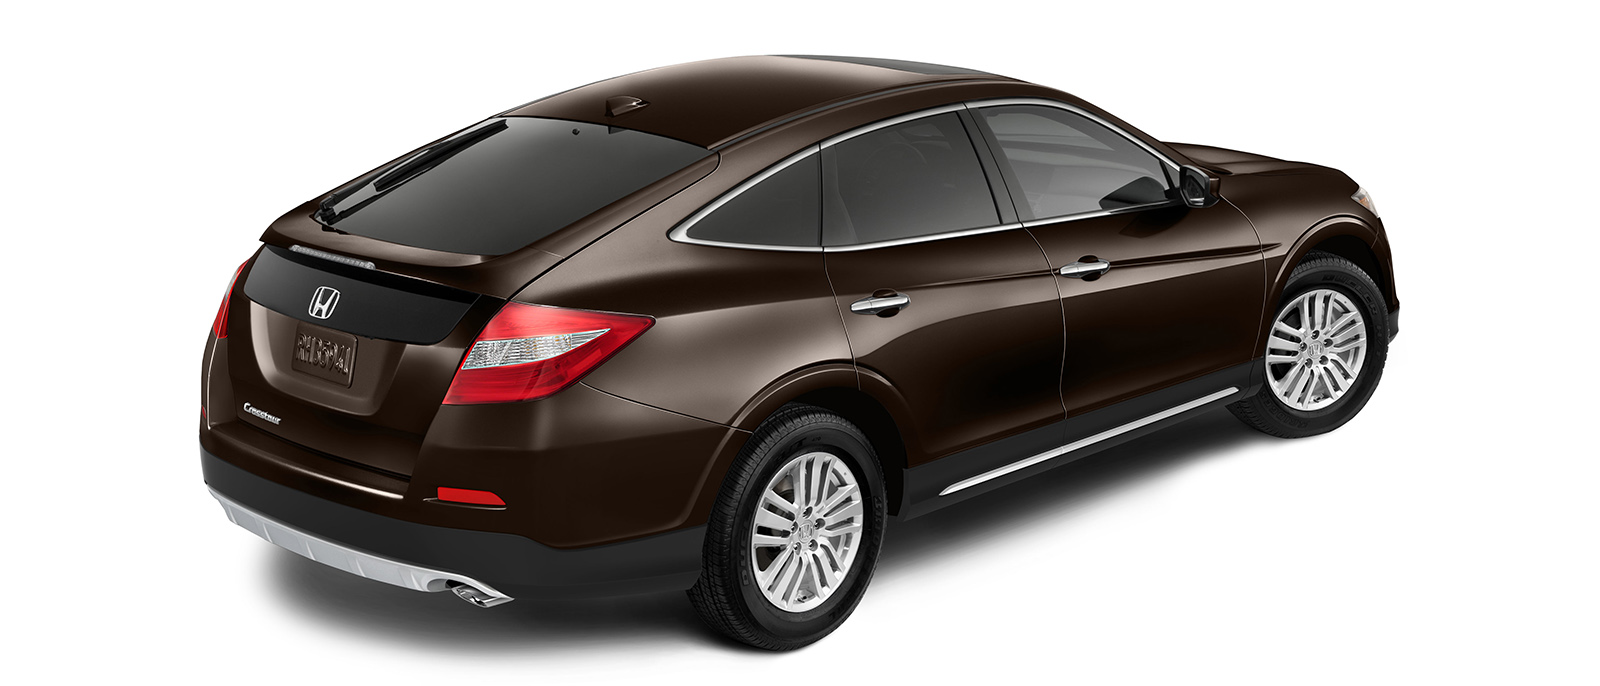 New Honda Civic Colors >> 2015 Honda Crosstour Colors Inside and Out